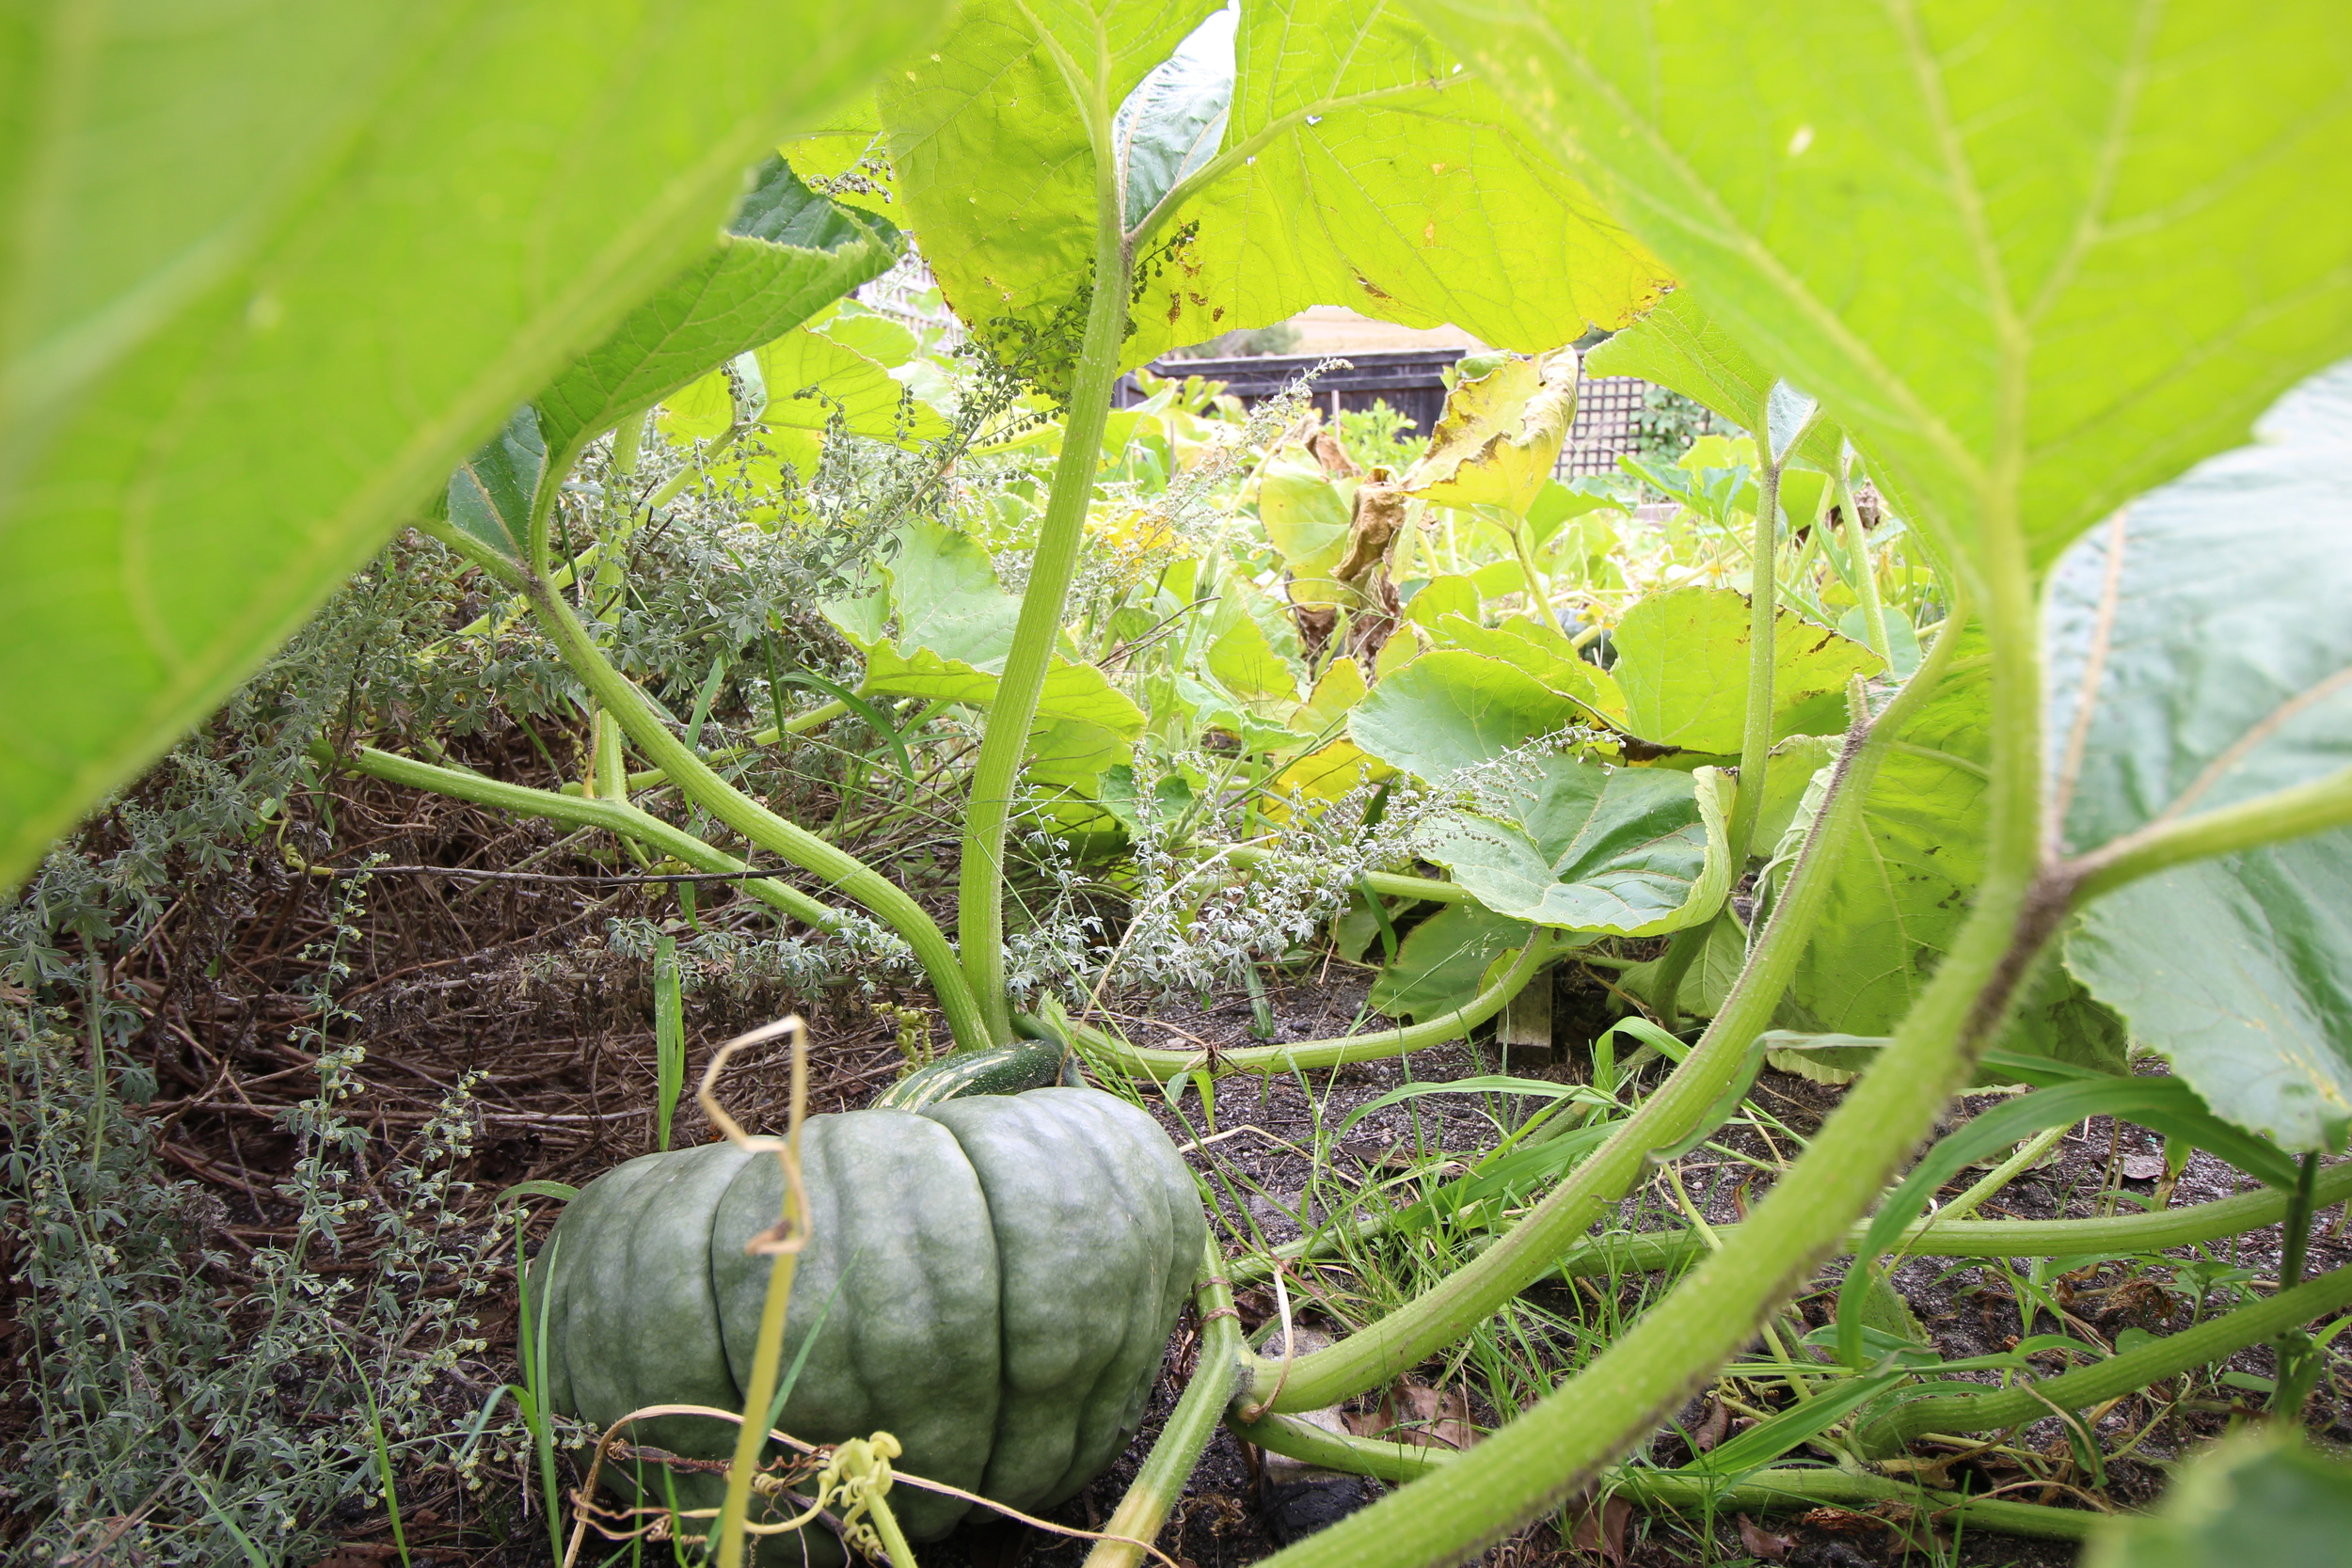 One of the many Giant pumpkins in the garden ... hmm what shall i make out of you